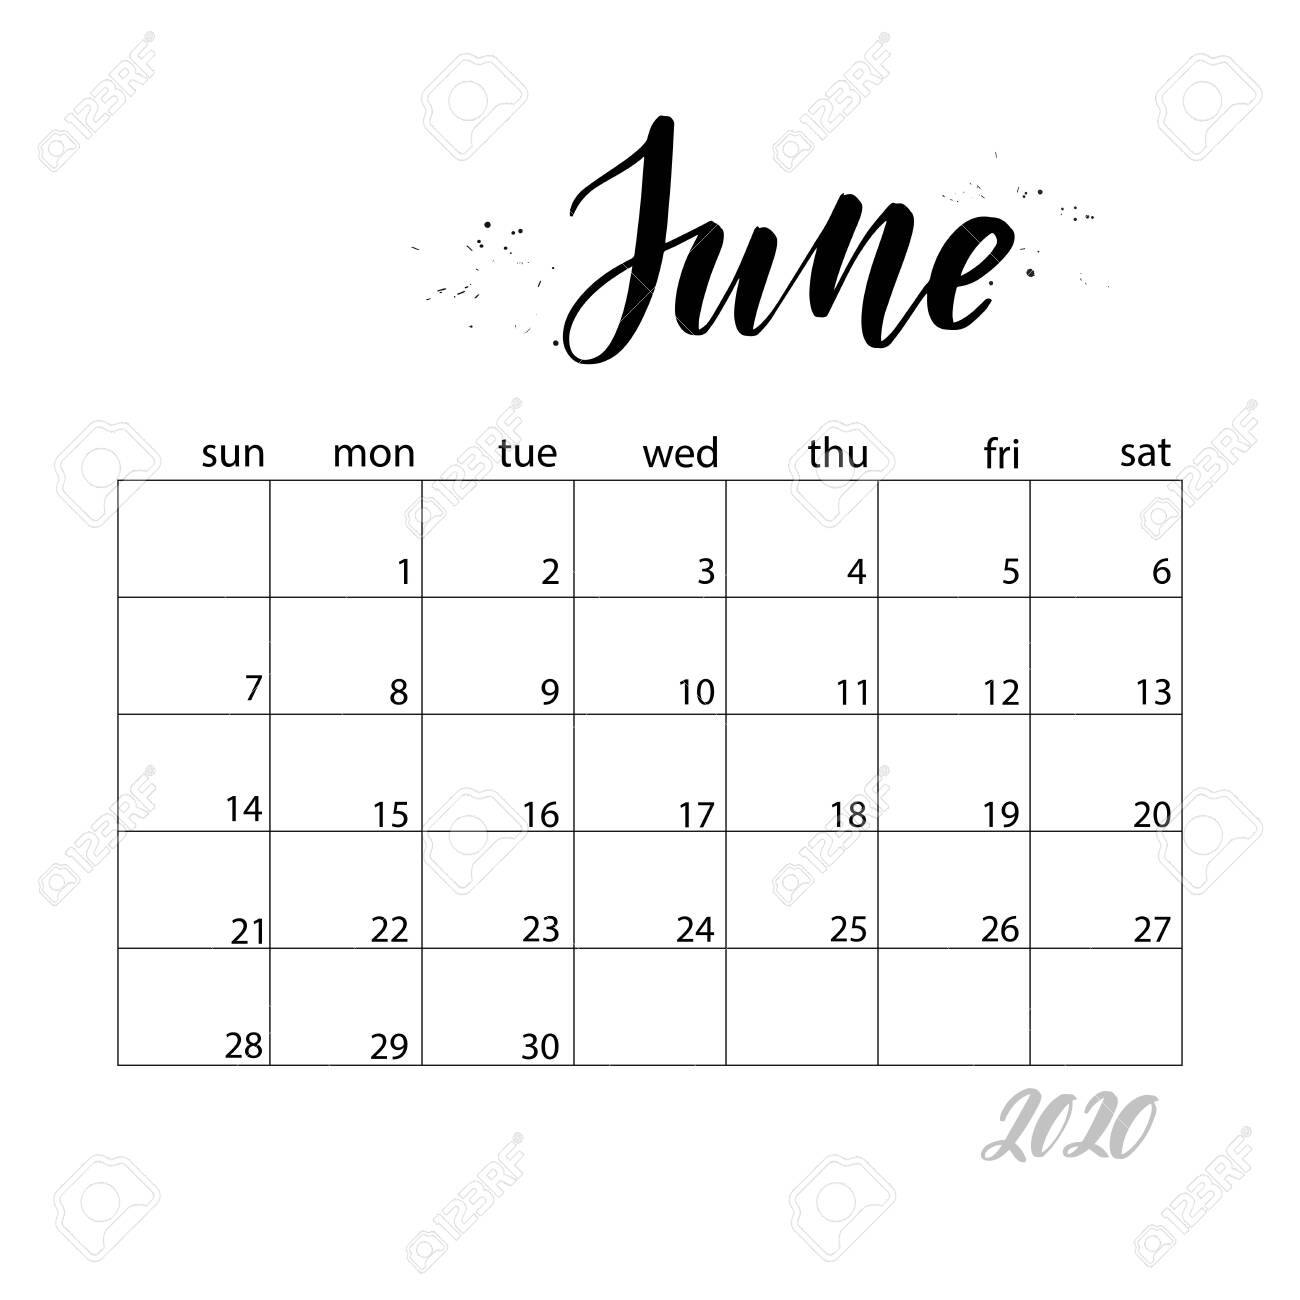 photograph about Stylish Planners and Organizers named June. Month to month calendar for 2020 calendar year. Handwritten progressive calligraphy..